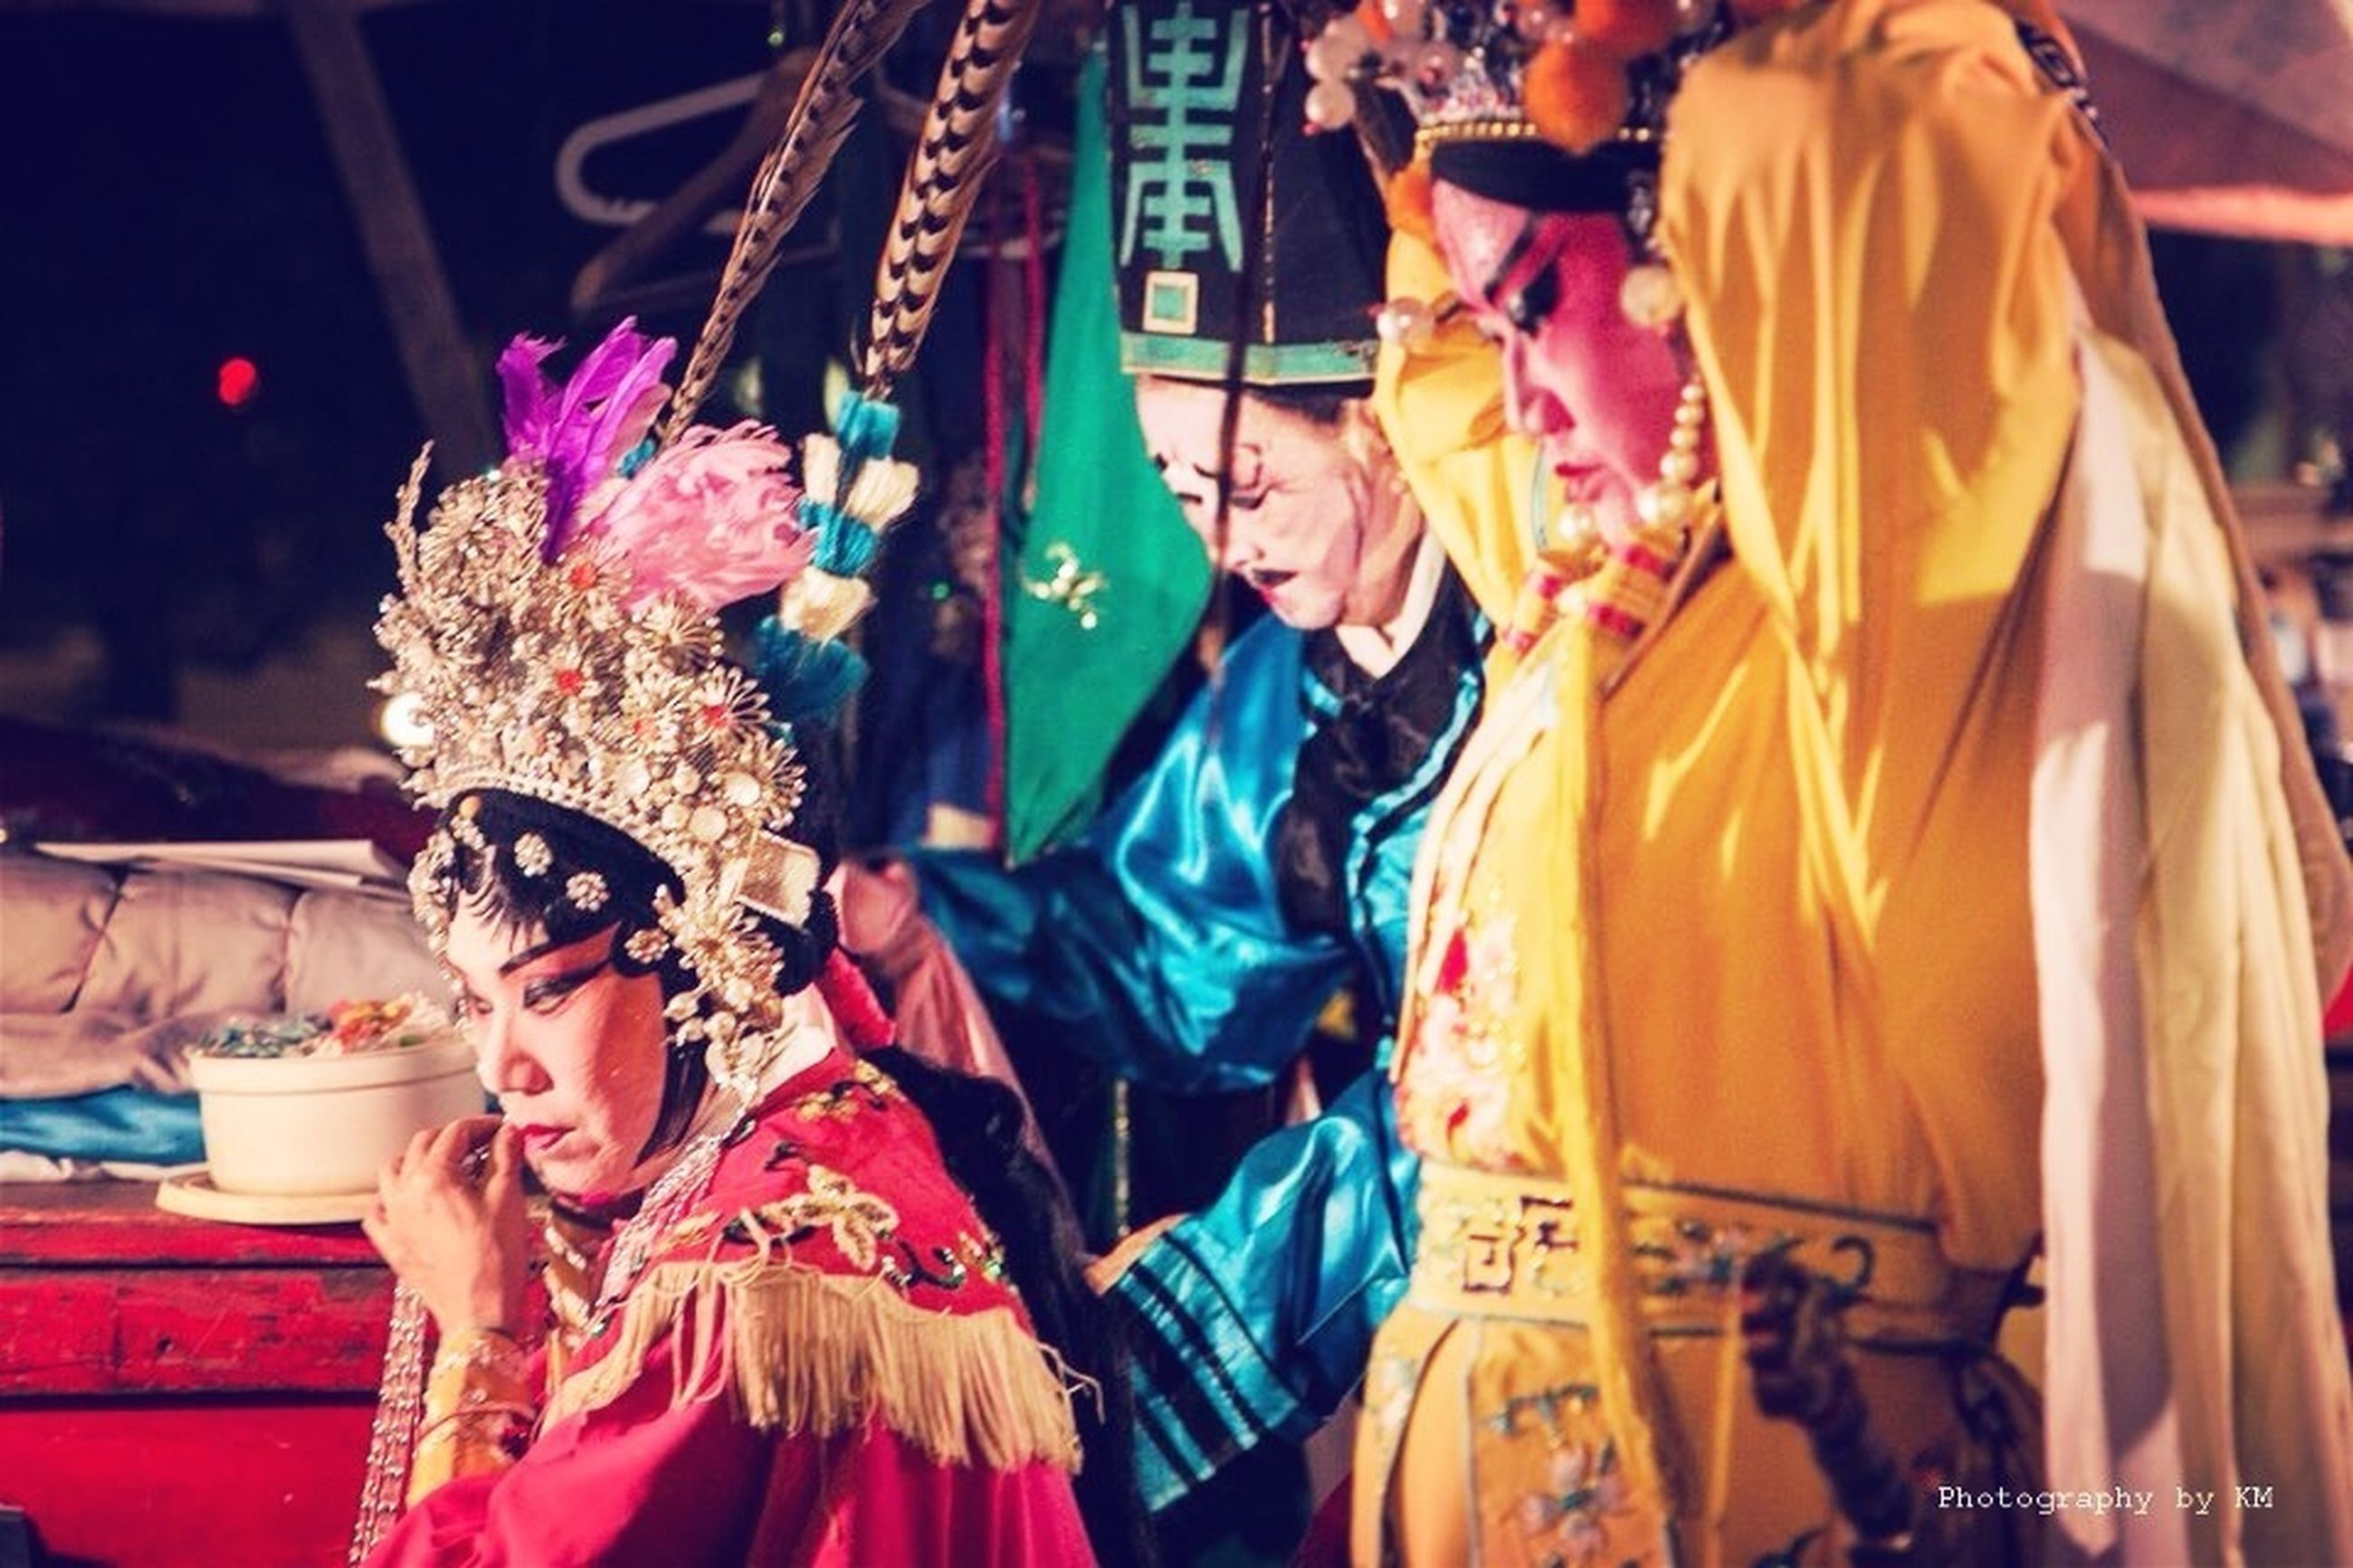 cultures, traditional clothing, men, tradition, clothing, multi colored, person, celebration, hanging, large group of people, art and craft, religion, arts culture and entertainment, outdoors, focus on foreground, flag, costume, creativity, art